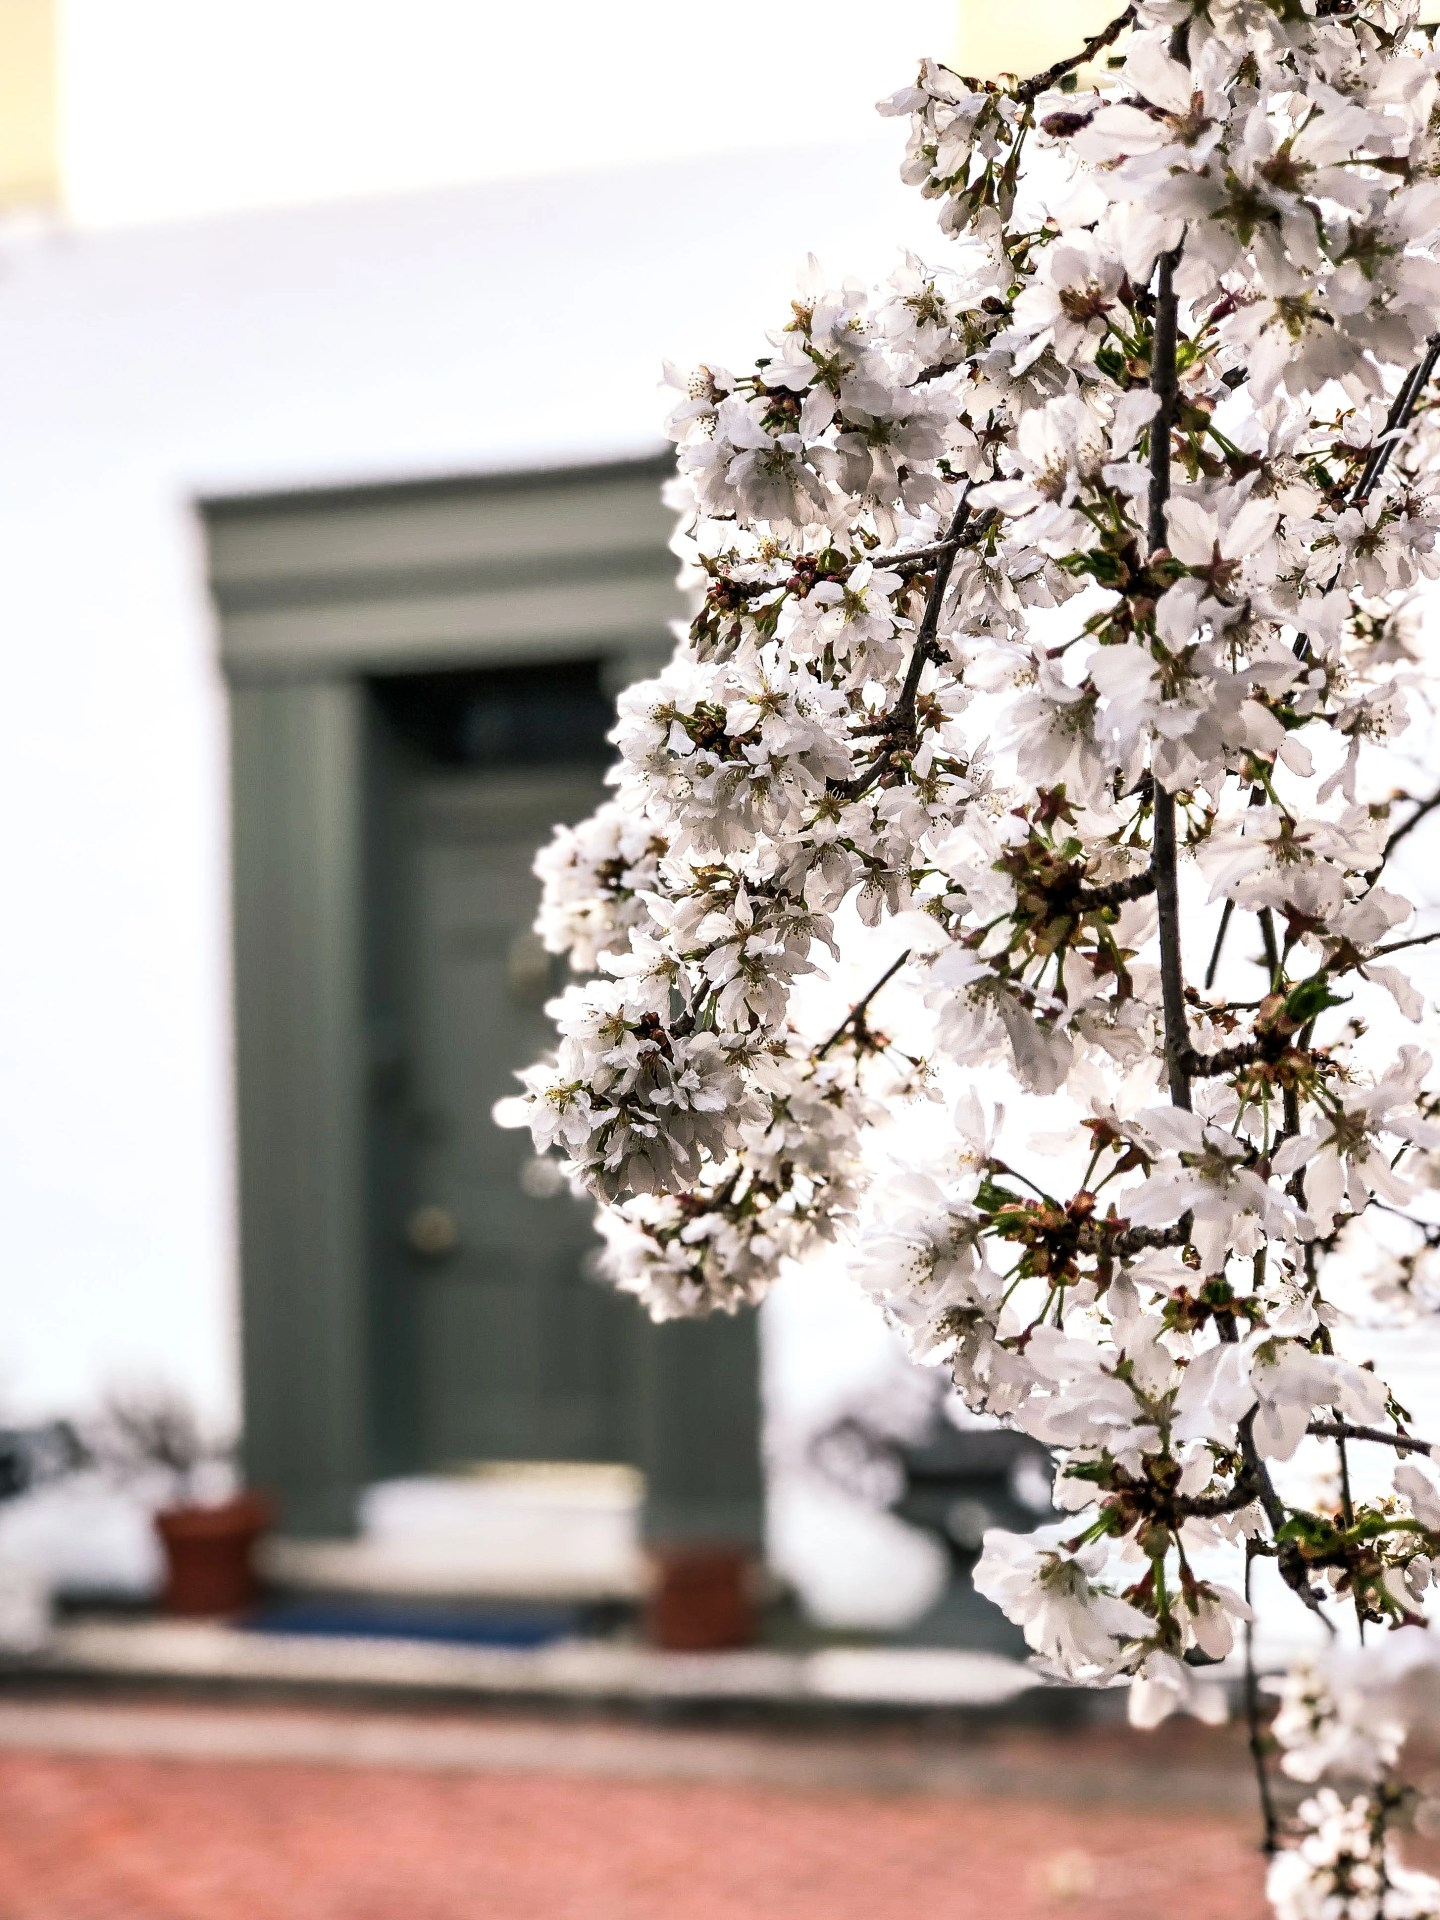 Lifestyle Blogger Chocolate and Lace shares her photo diary of Philadelphia flowers in the Spring.